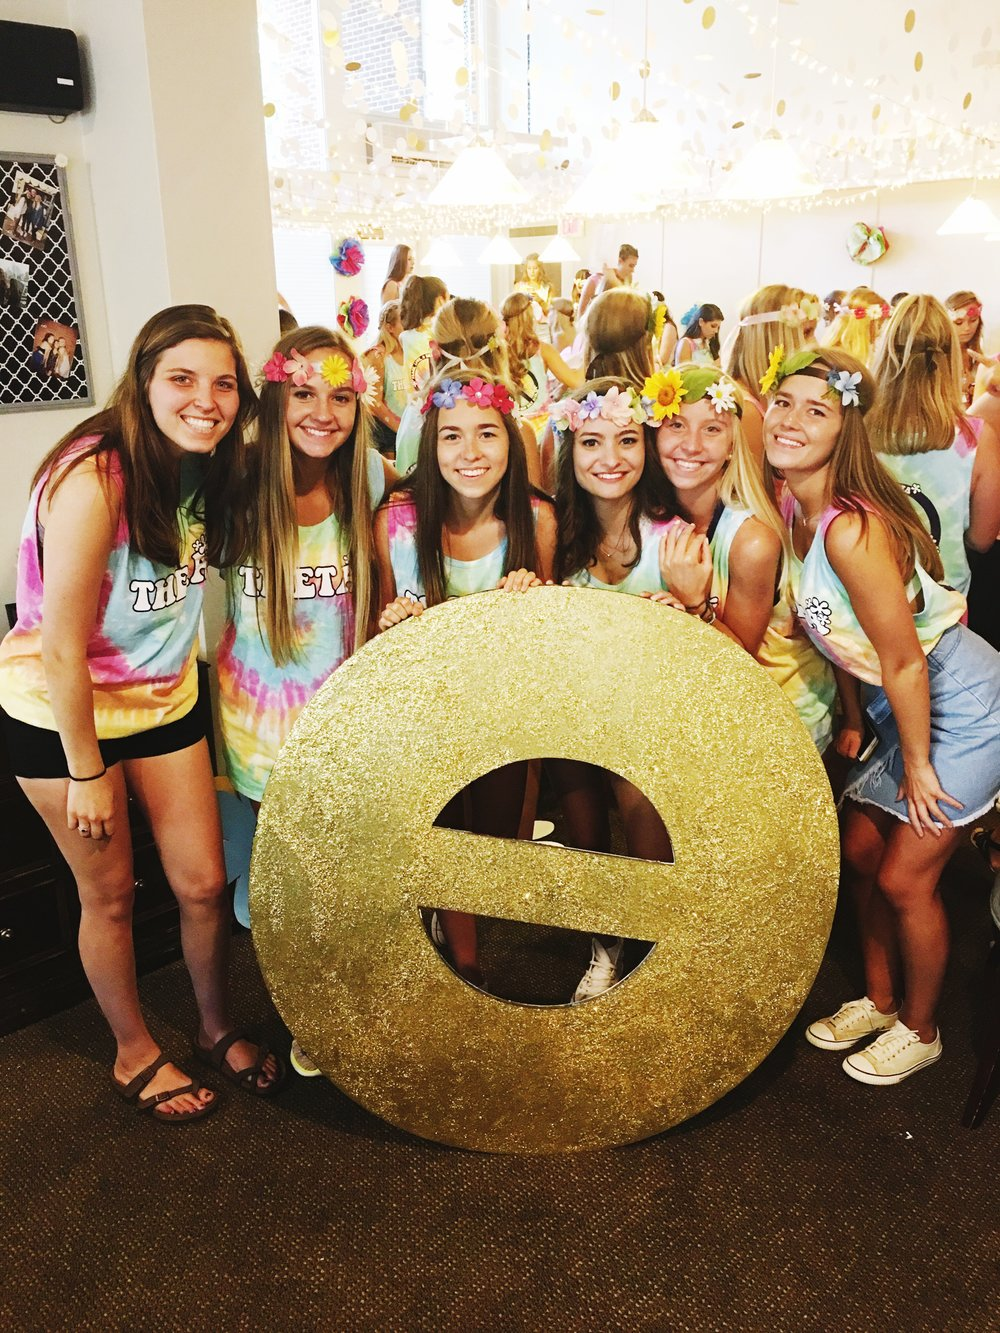 Are you participating in sorority recruitment this fall? Want to know how to decide what sorority is the right choice for you? Read this guide to rush for all the tips, tricks, and vocabulary you need to know to get into the house you love!